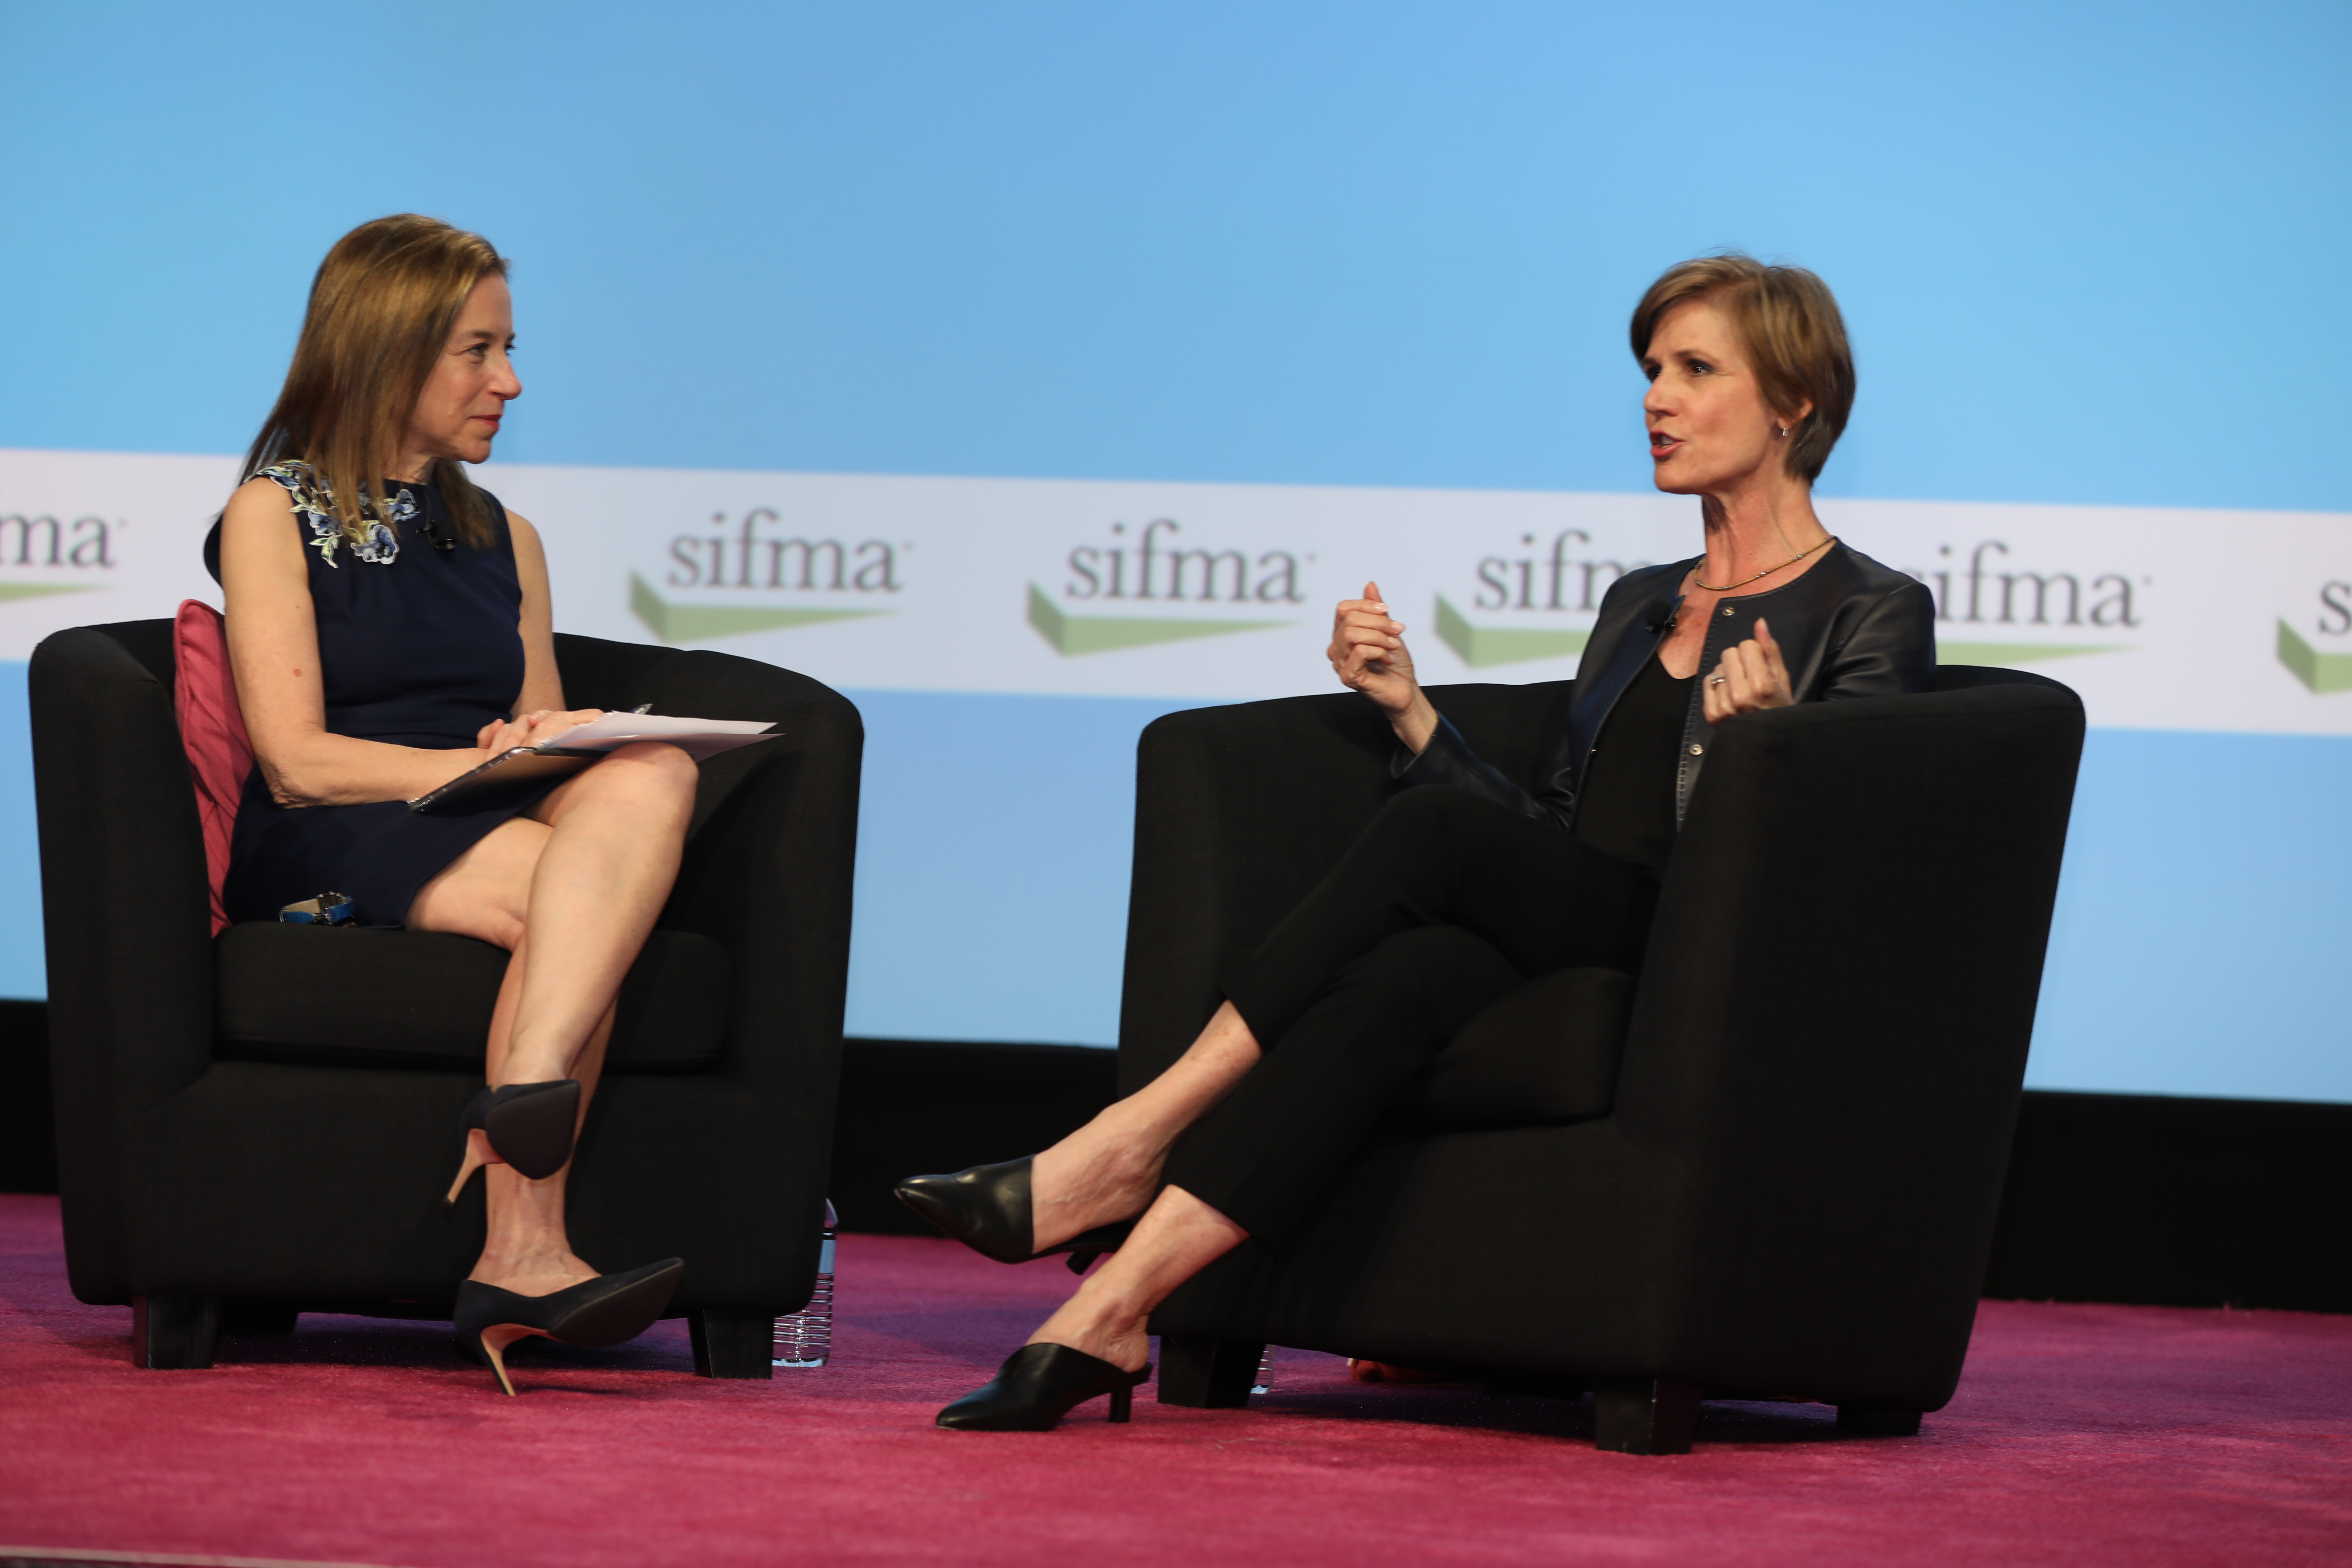 Elaine Mandelbaum, president of the SIFMA C&L Society, and Sally Yates discuss Sally's remarkable career at the 2019 SIFMA C&L Annual Seminar.